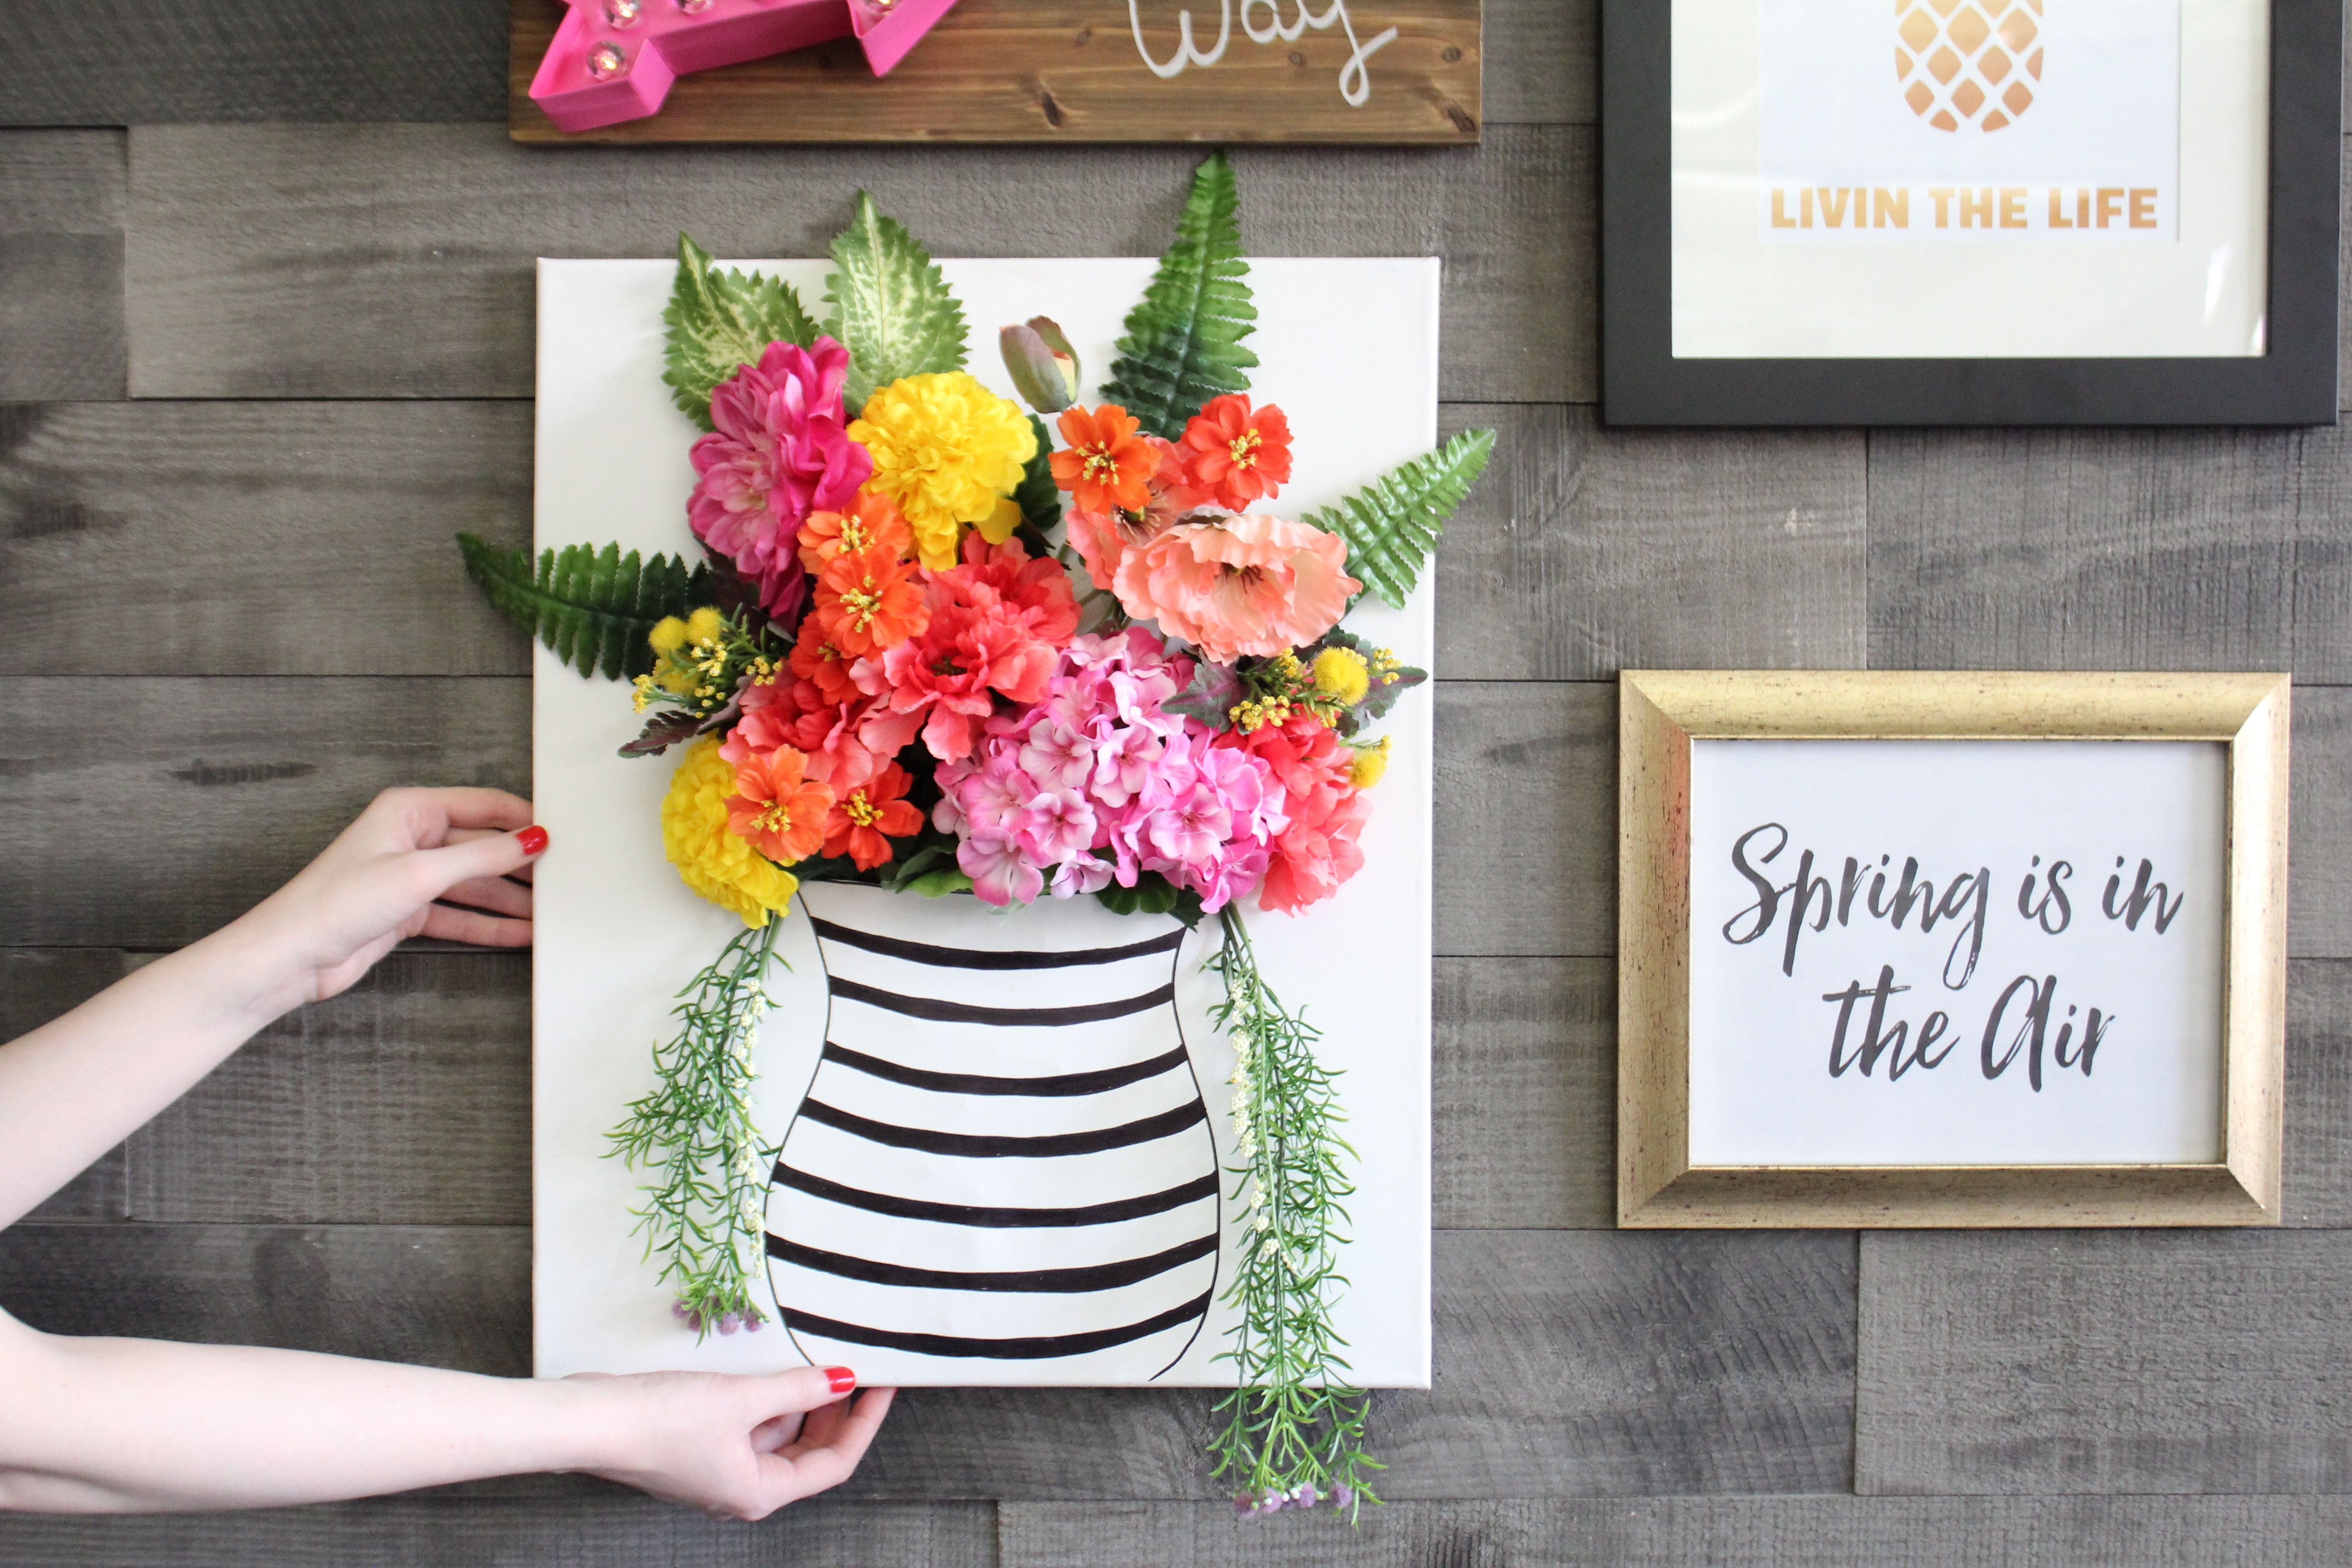 Diy Wall Flowers: Watch How To Make Your Own 3D Floral Wall Art With This